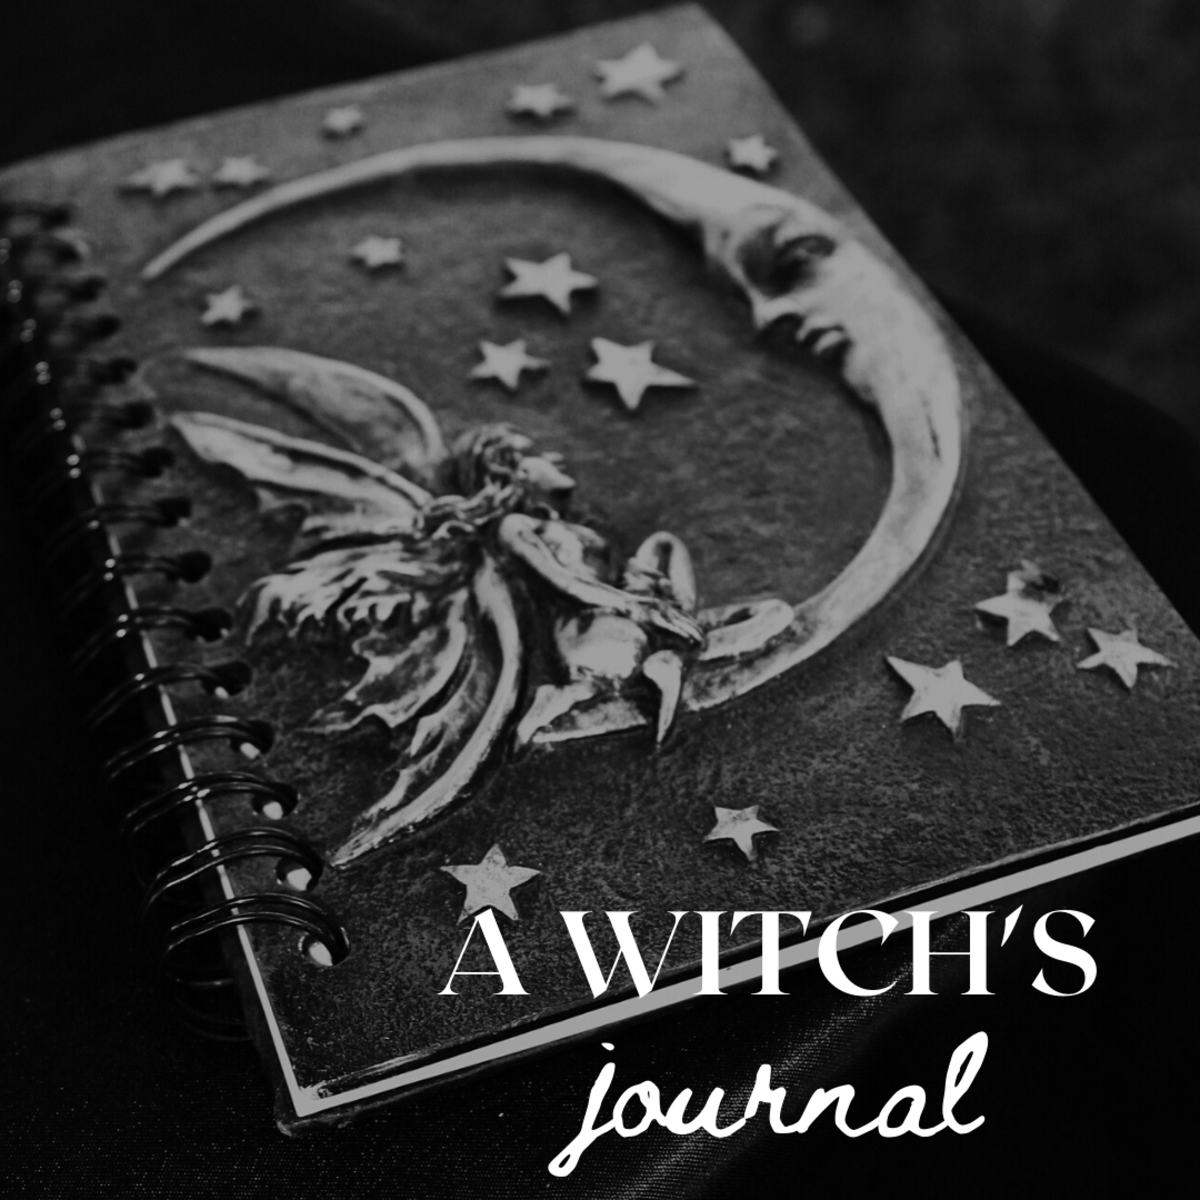 A witch's journal is important for record keeping.